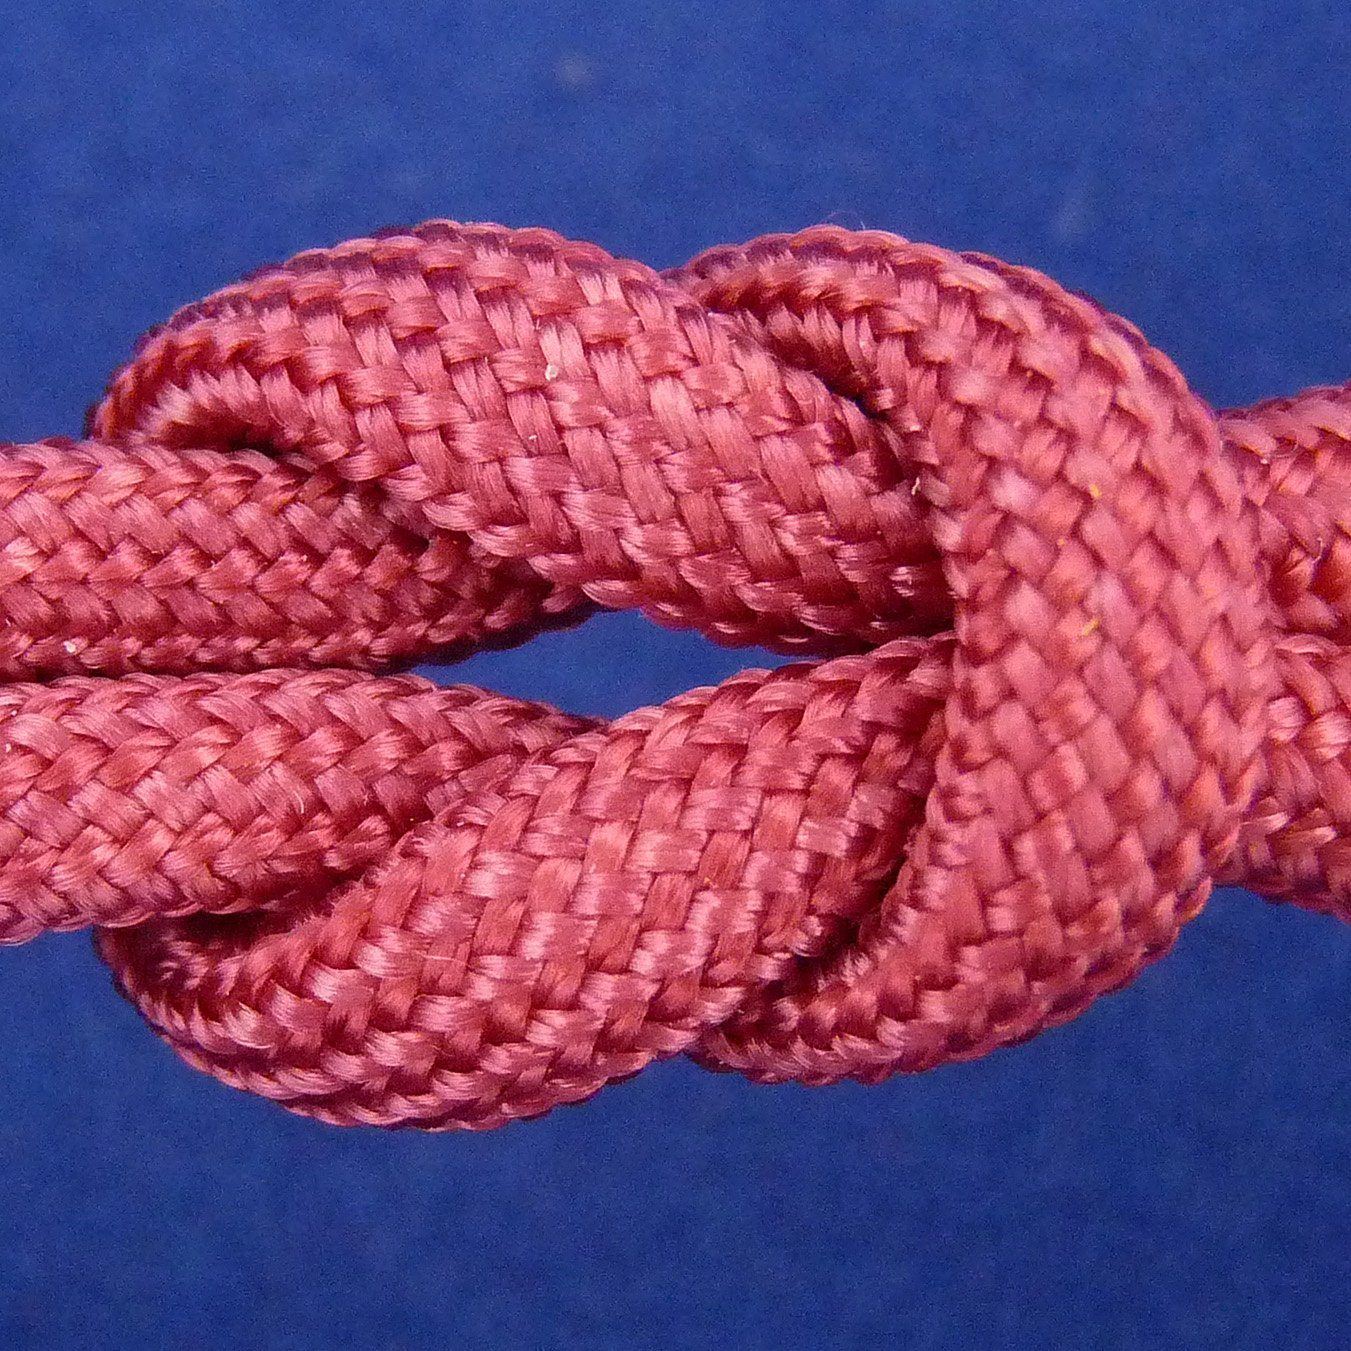 MilSpec Paracord Cranberry Red 110 ft. Hank, Military Survival Braided Parachute 550 Cord. Use with Paracord Tools for Tent Camping, Hiking, Hunting Ropes, Bracelets & Projects. Plus 2 eBooks. by Paracord 550 Mil-Spec (TM) (Image #8)